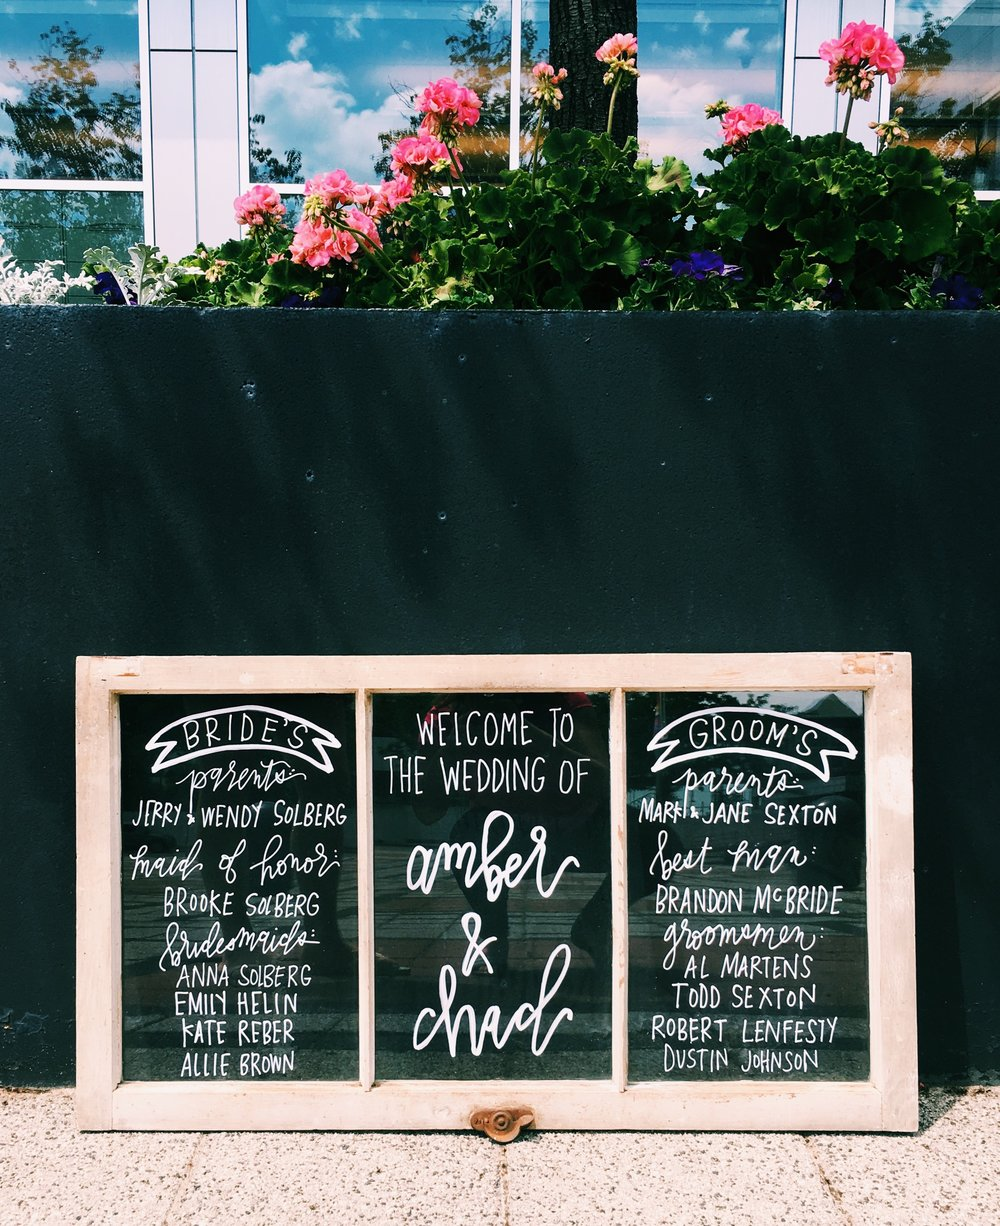 hand-lettered-barn-window-tripanel-sign-calligraphy-welcome-wedding-signage-programonasign